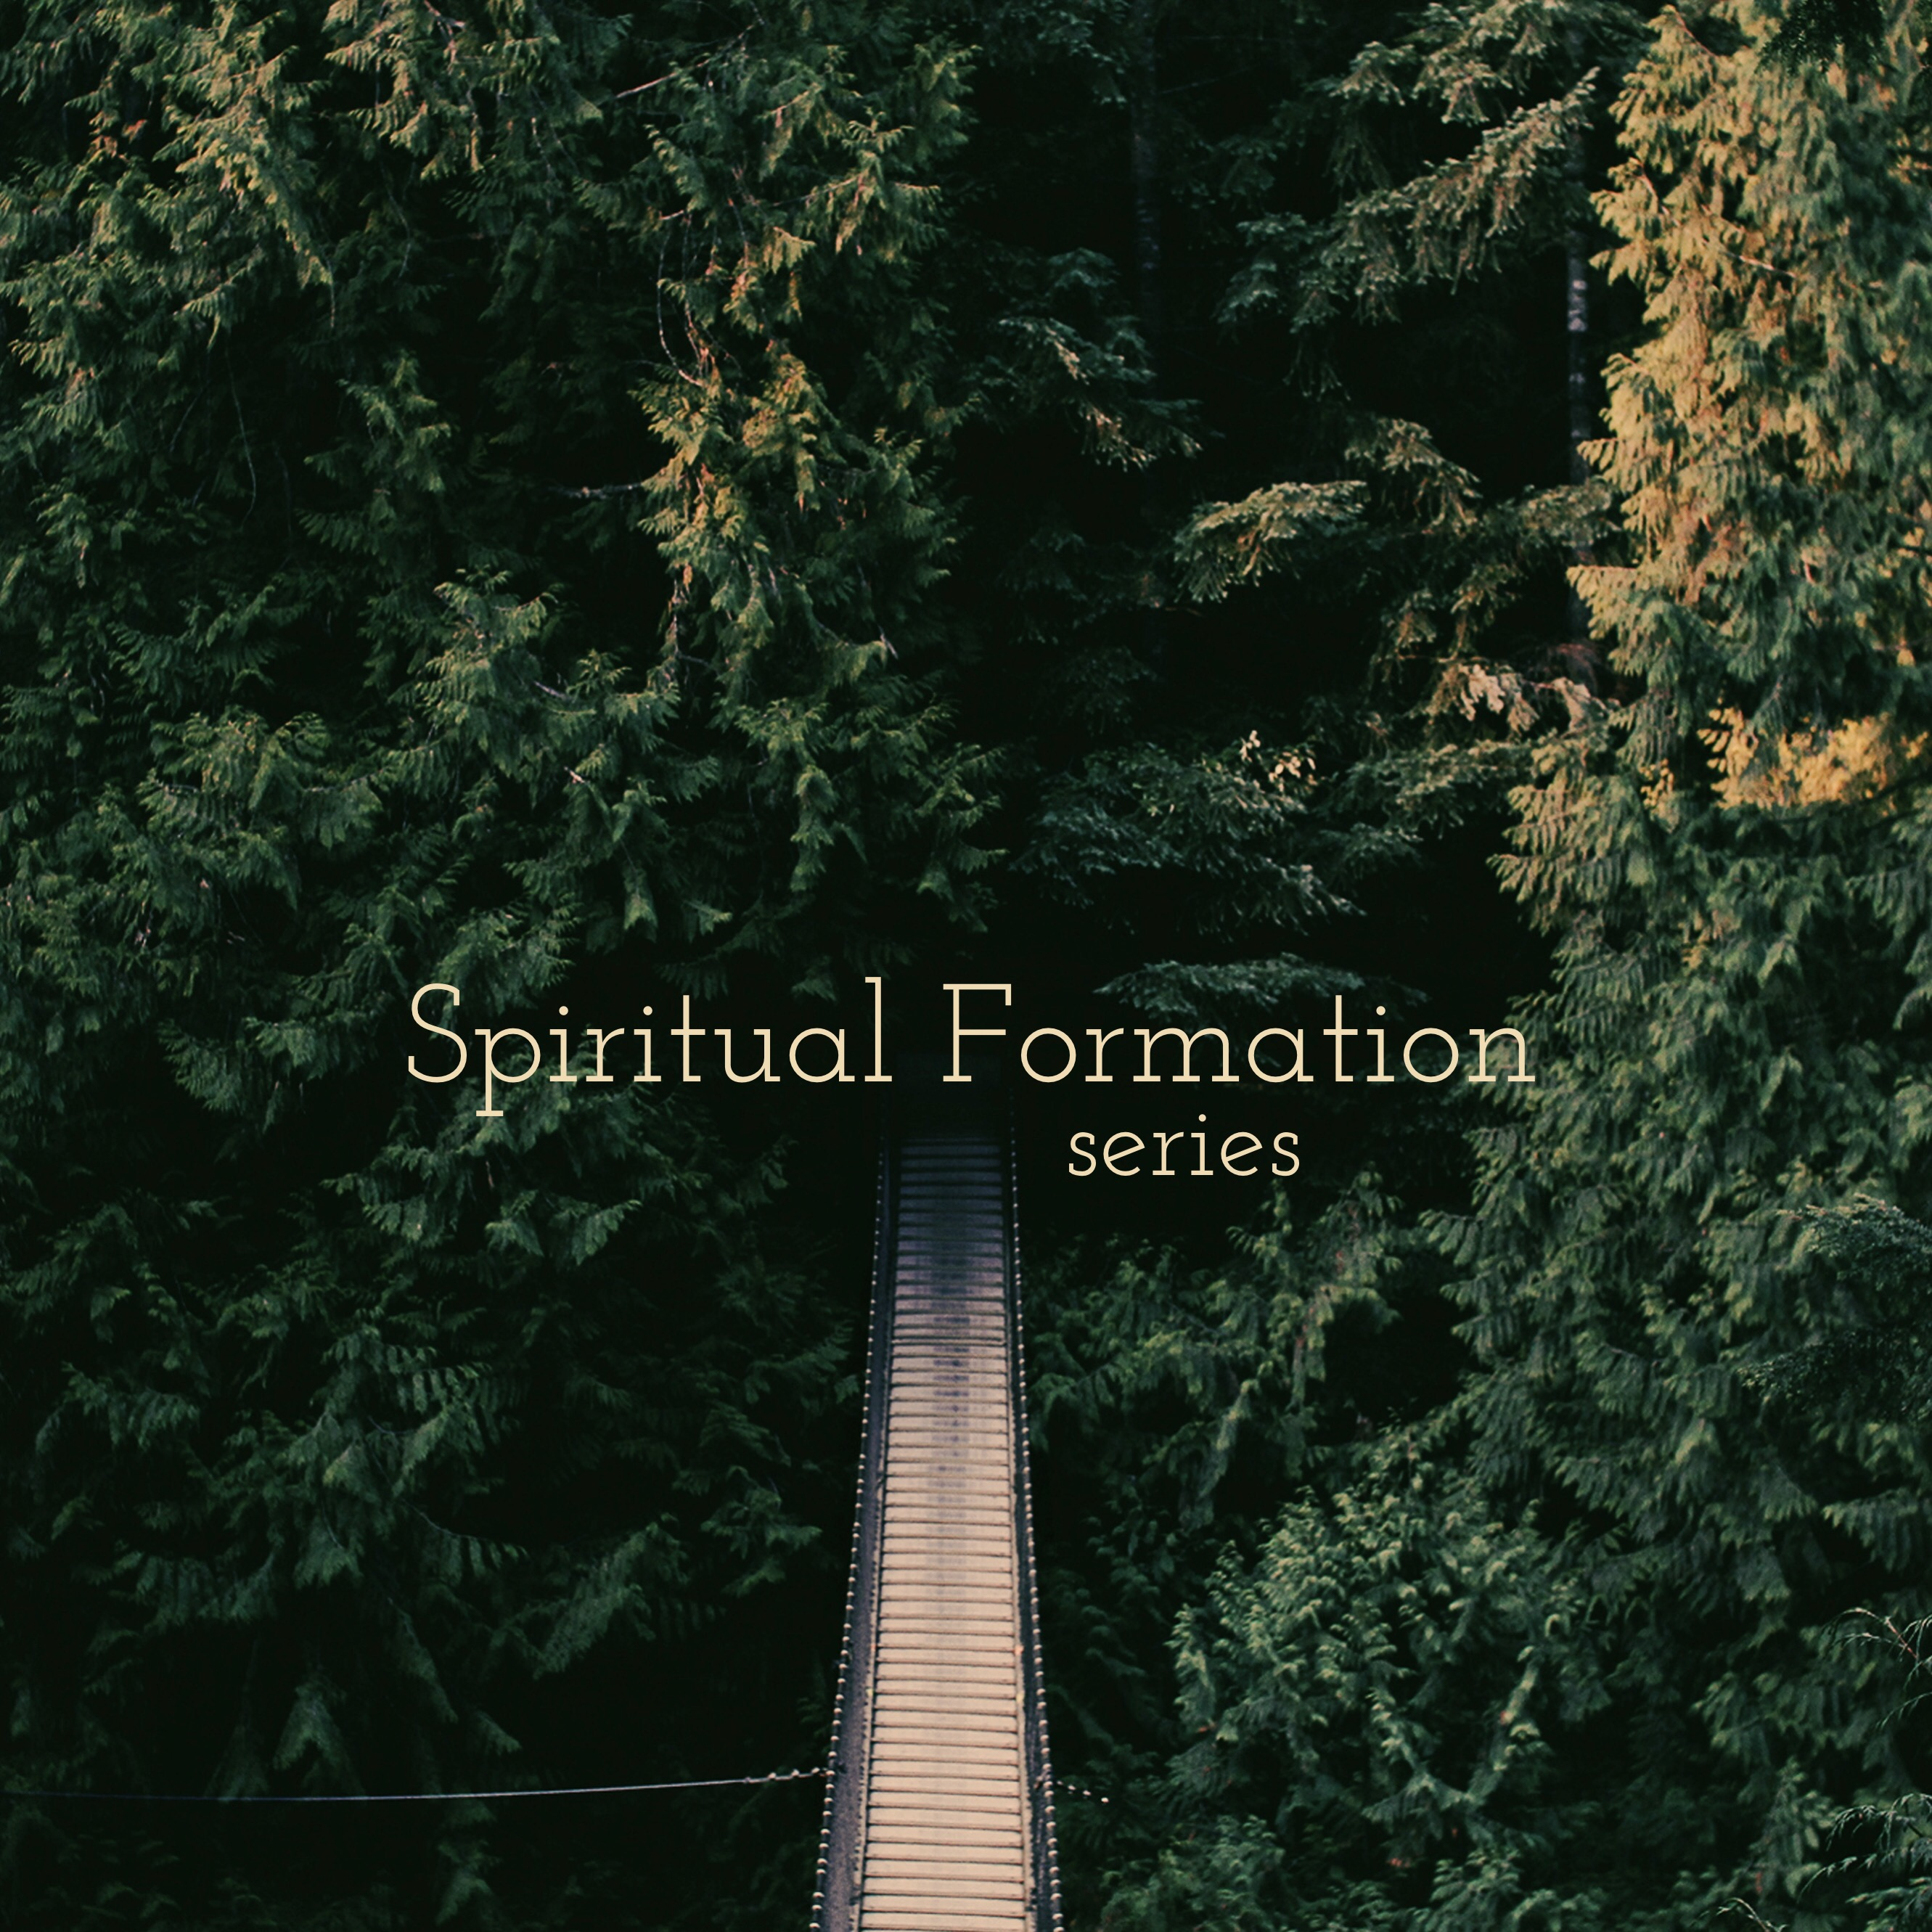 Apical Dominance. Spiritual Formation series, part 6.